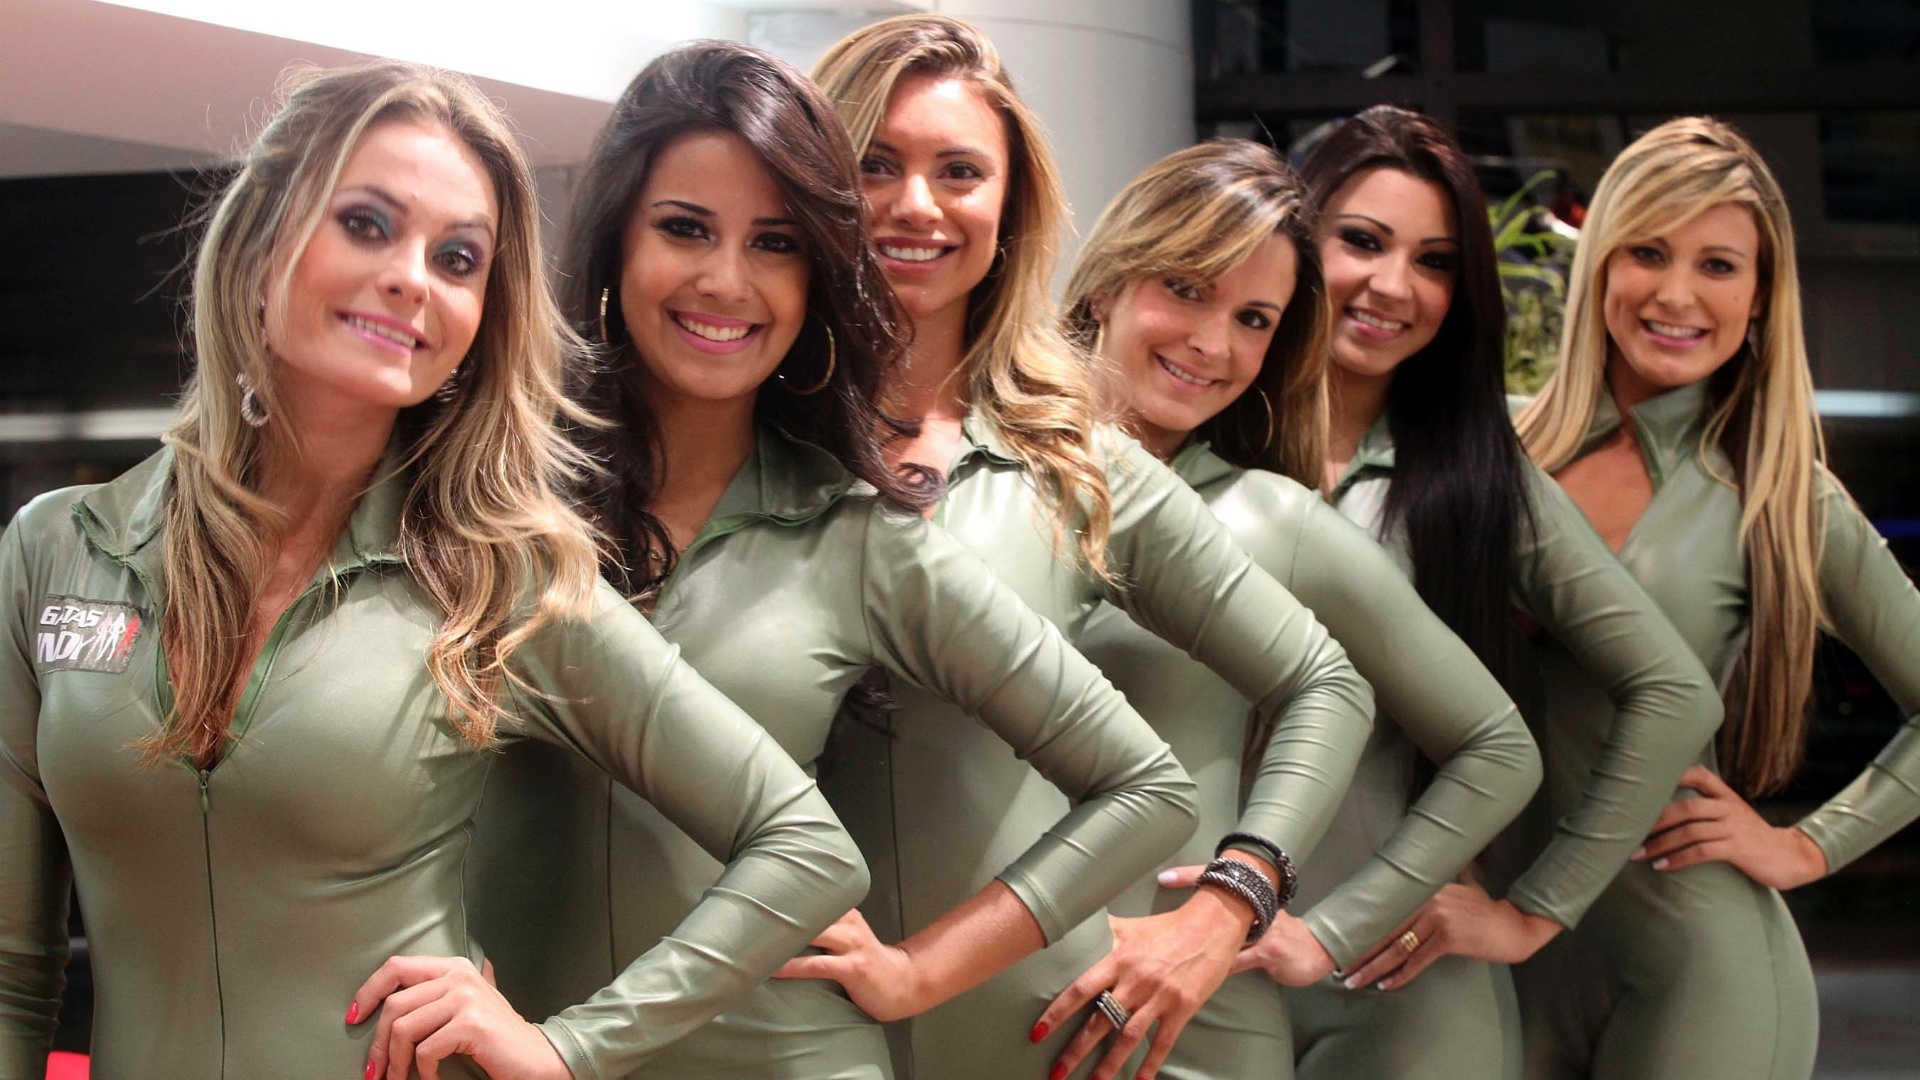 Candidatas a gata da Frmula Indy sorriem e posam para foto